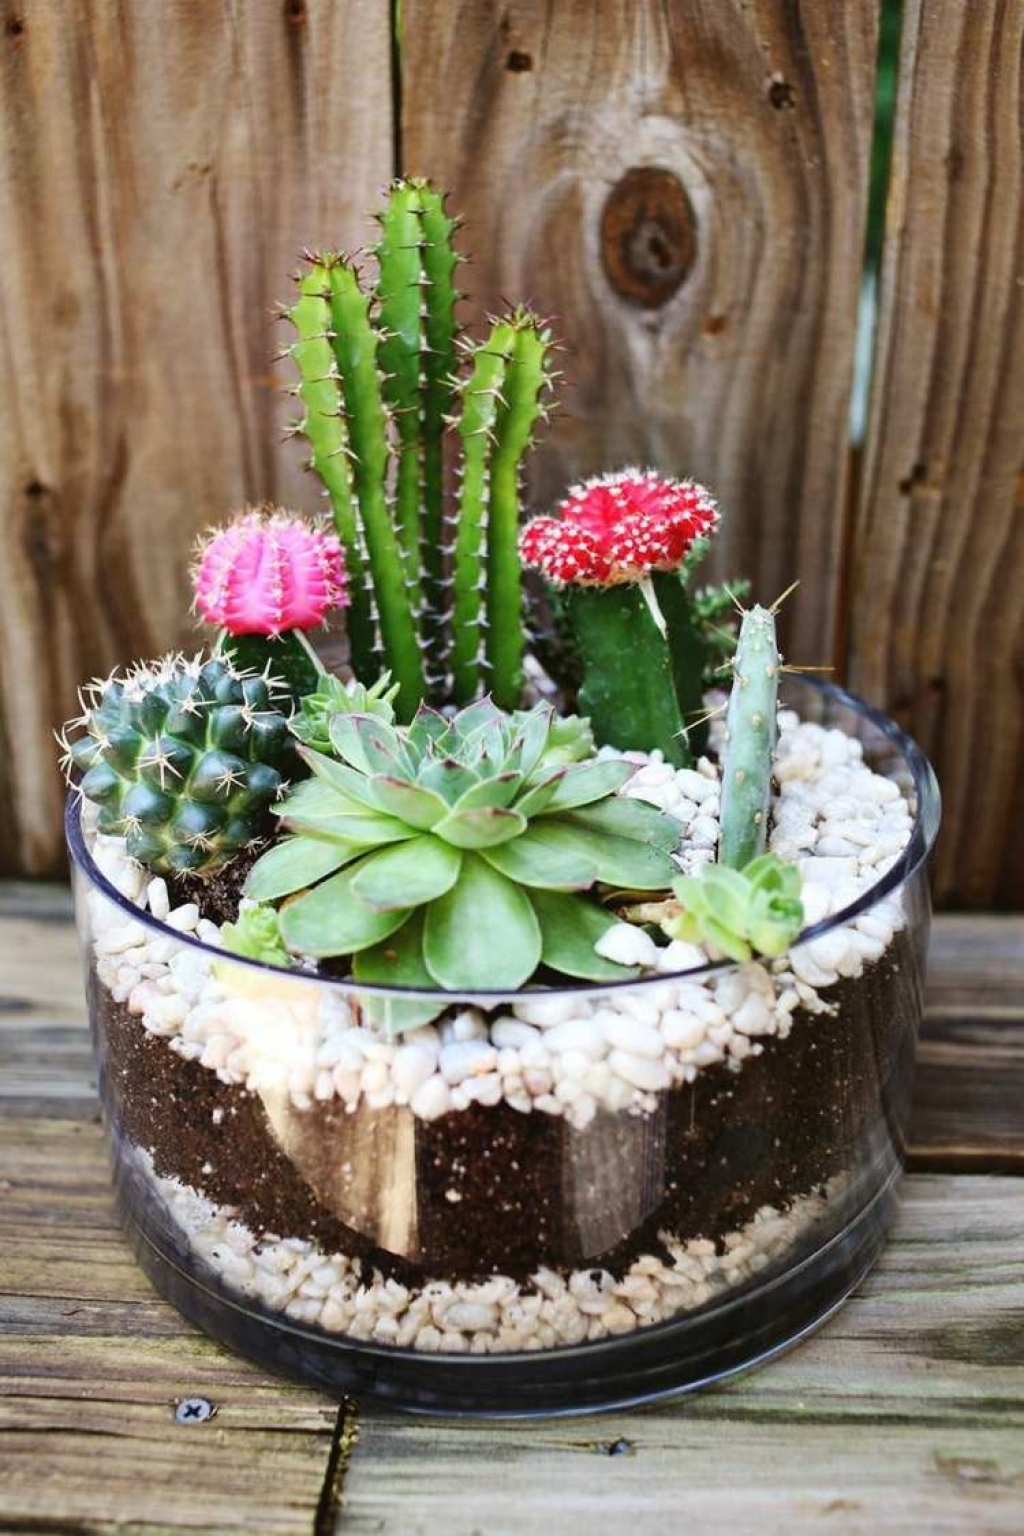 Quick and easy home decorating ideas #71. Having Too Many Succulents? Create Stunning DIY Decoration